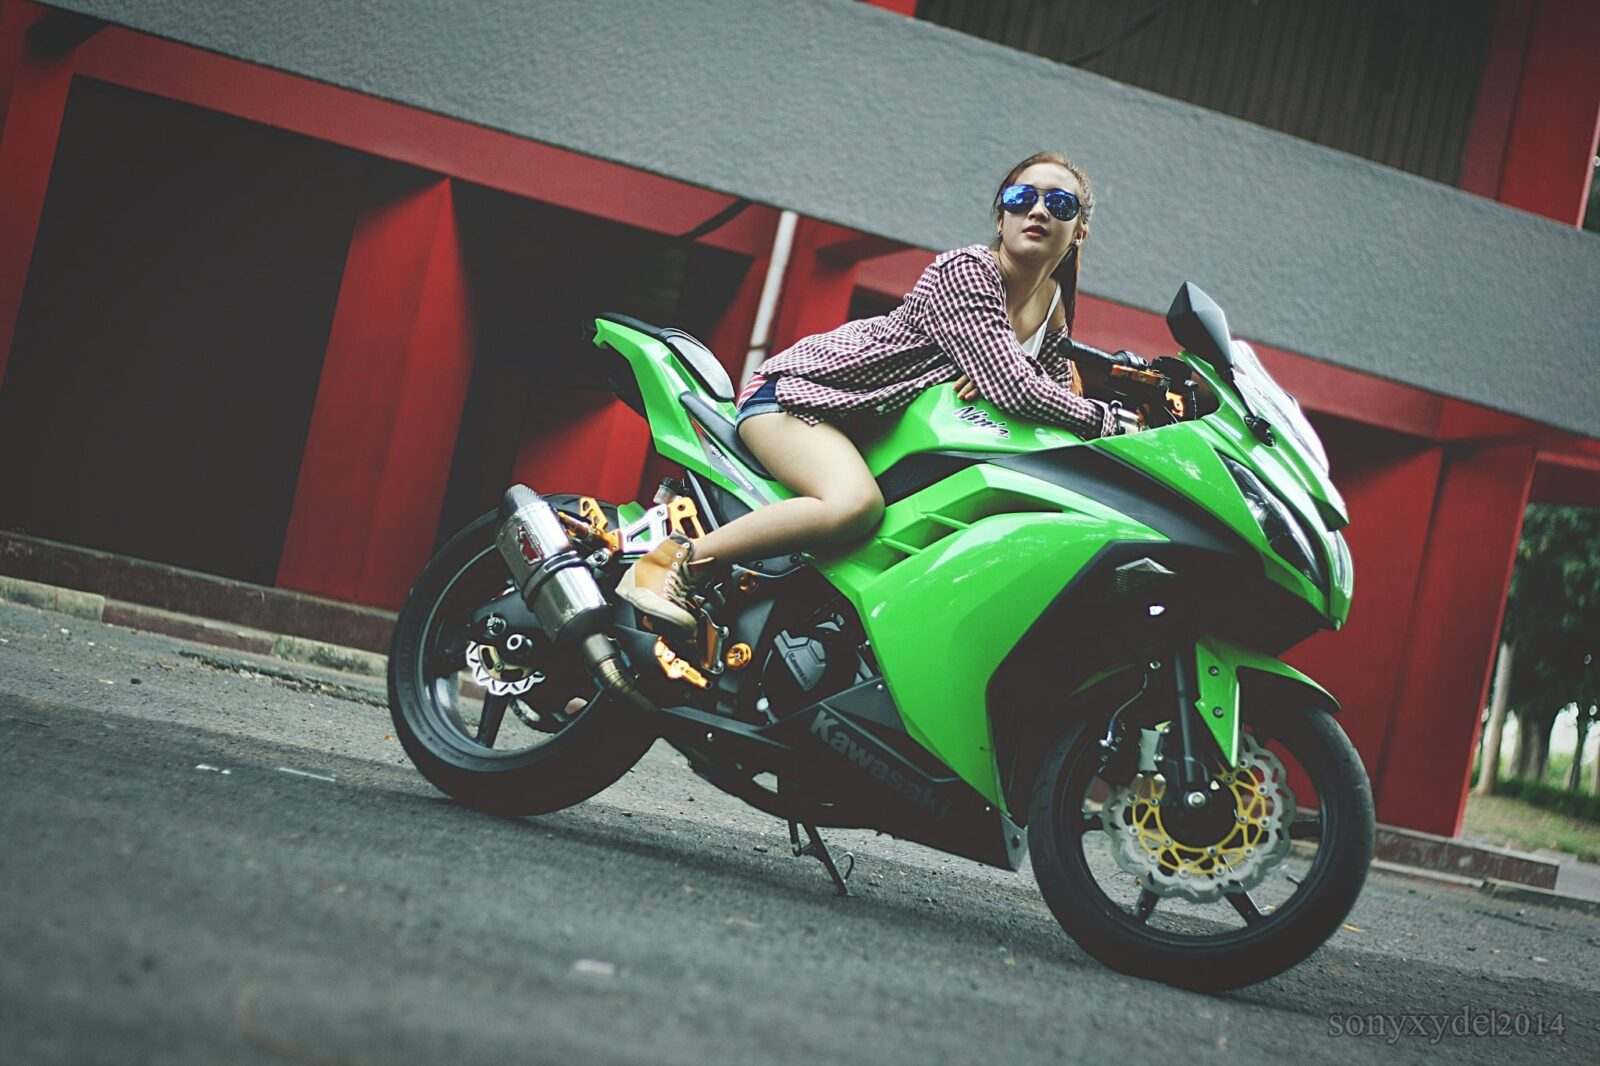 kawasaki girls In 2013, kawasaki replaced the 250 with the all-new 300cc version without sacrificing all the confidence inspiring characteristics that made it a bestseller among women the kawasaki ninja 300 has a seat height of 309 inches.